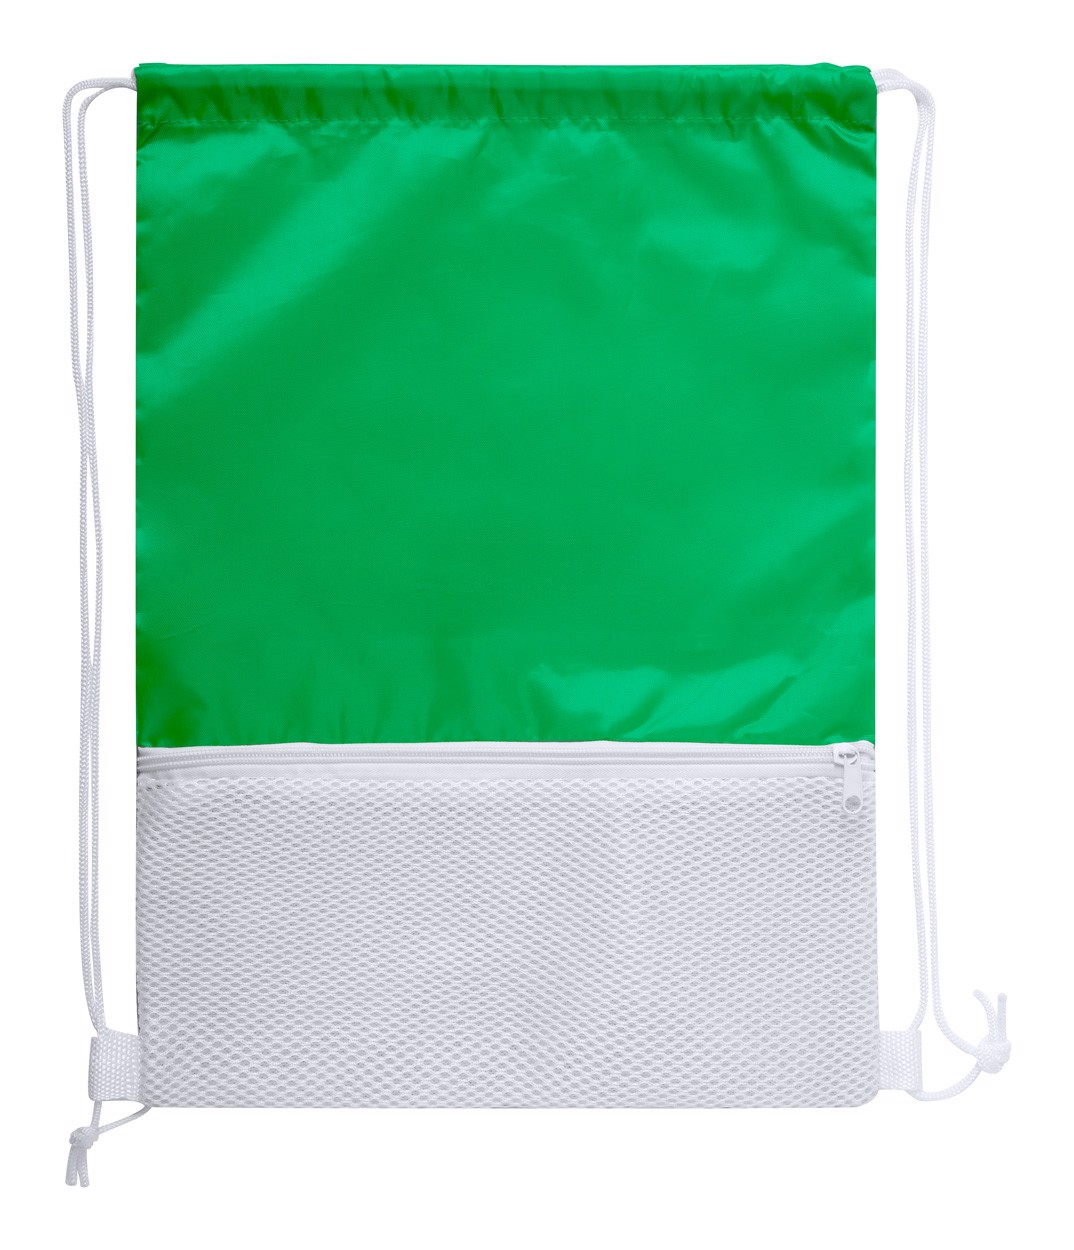 Drawstring Bag Nabar - Green / White